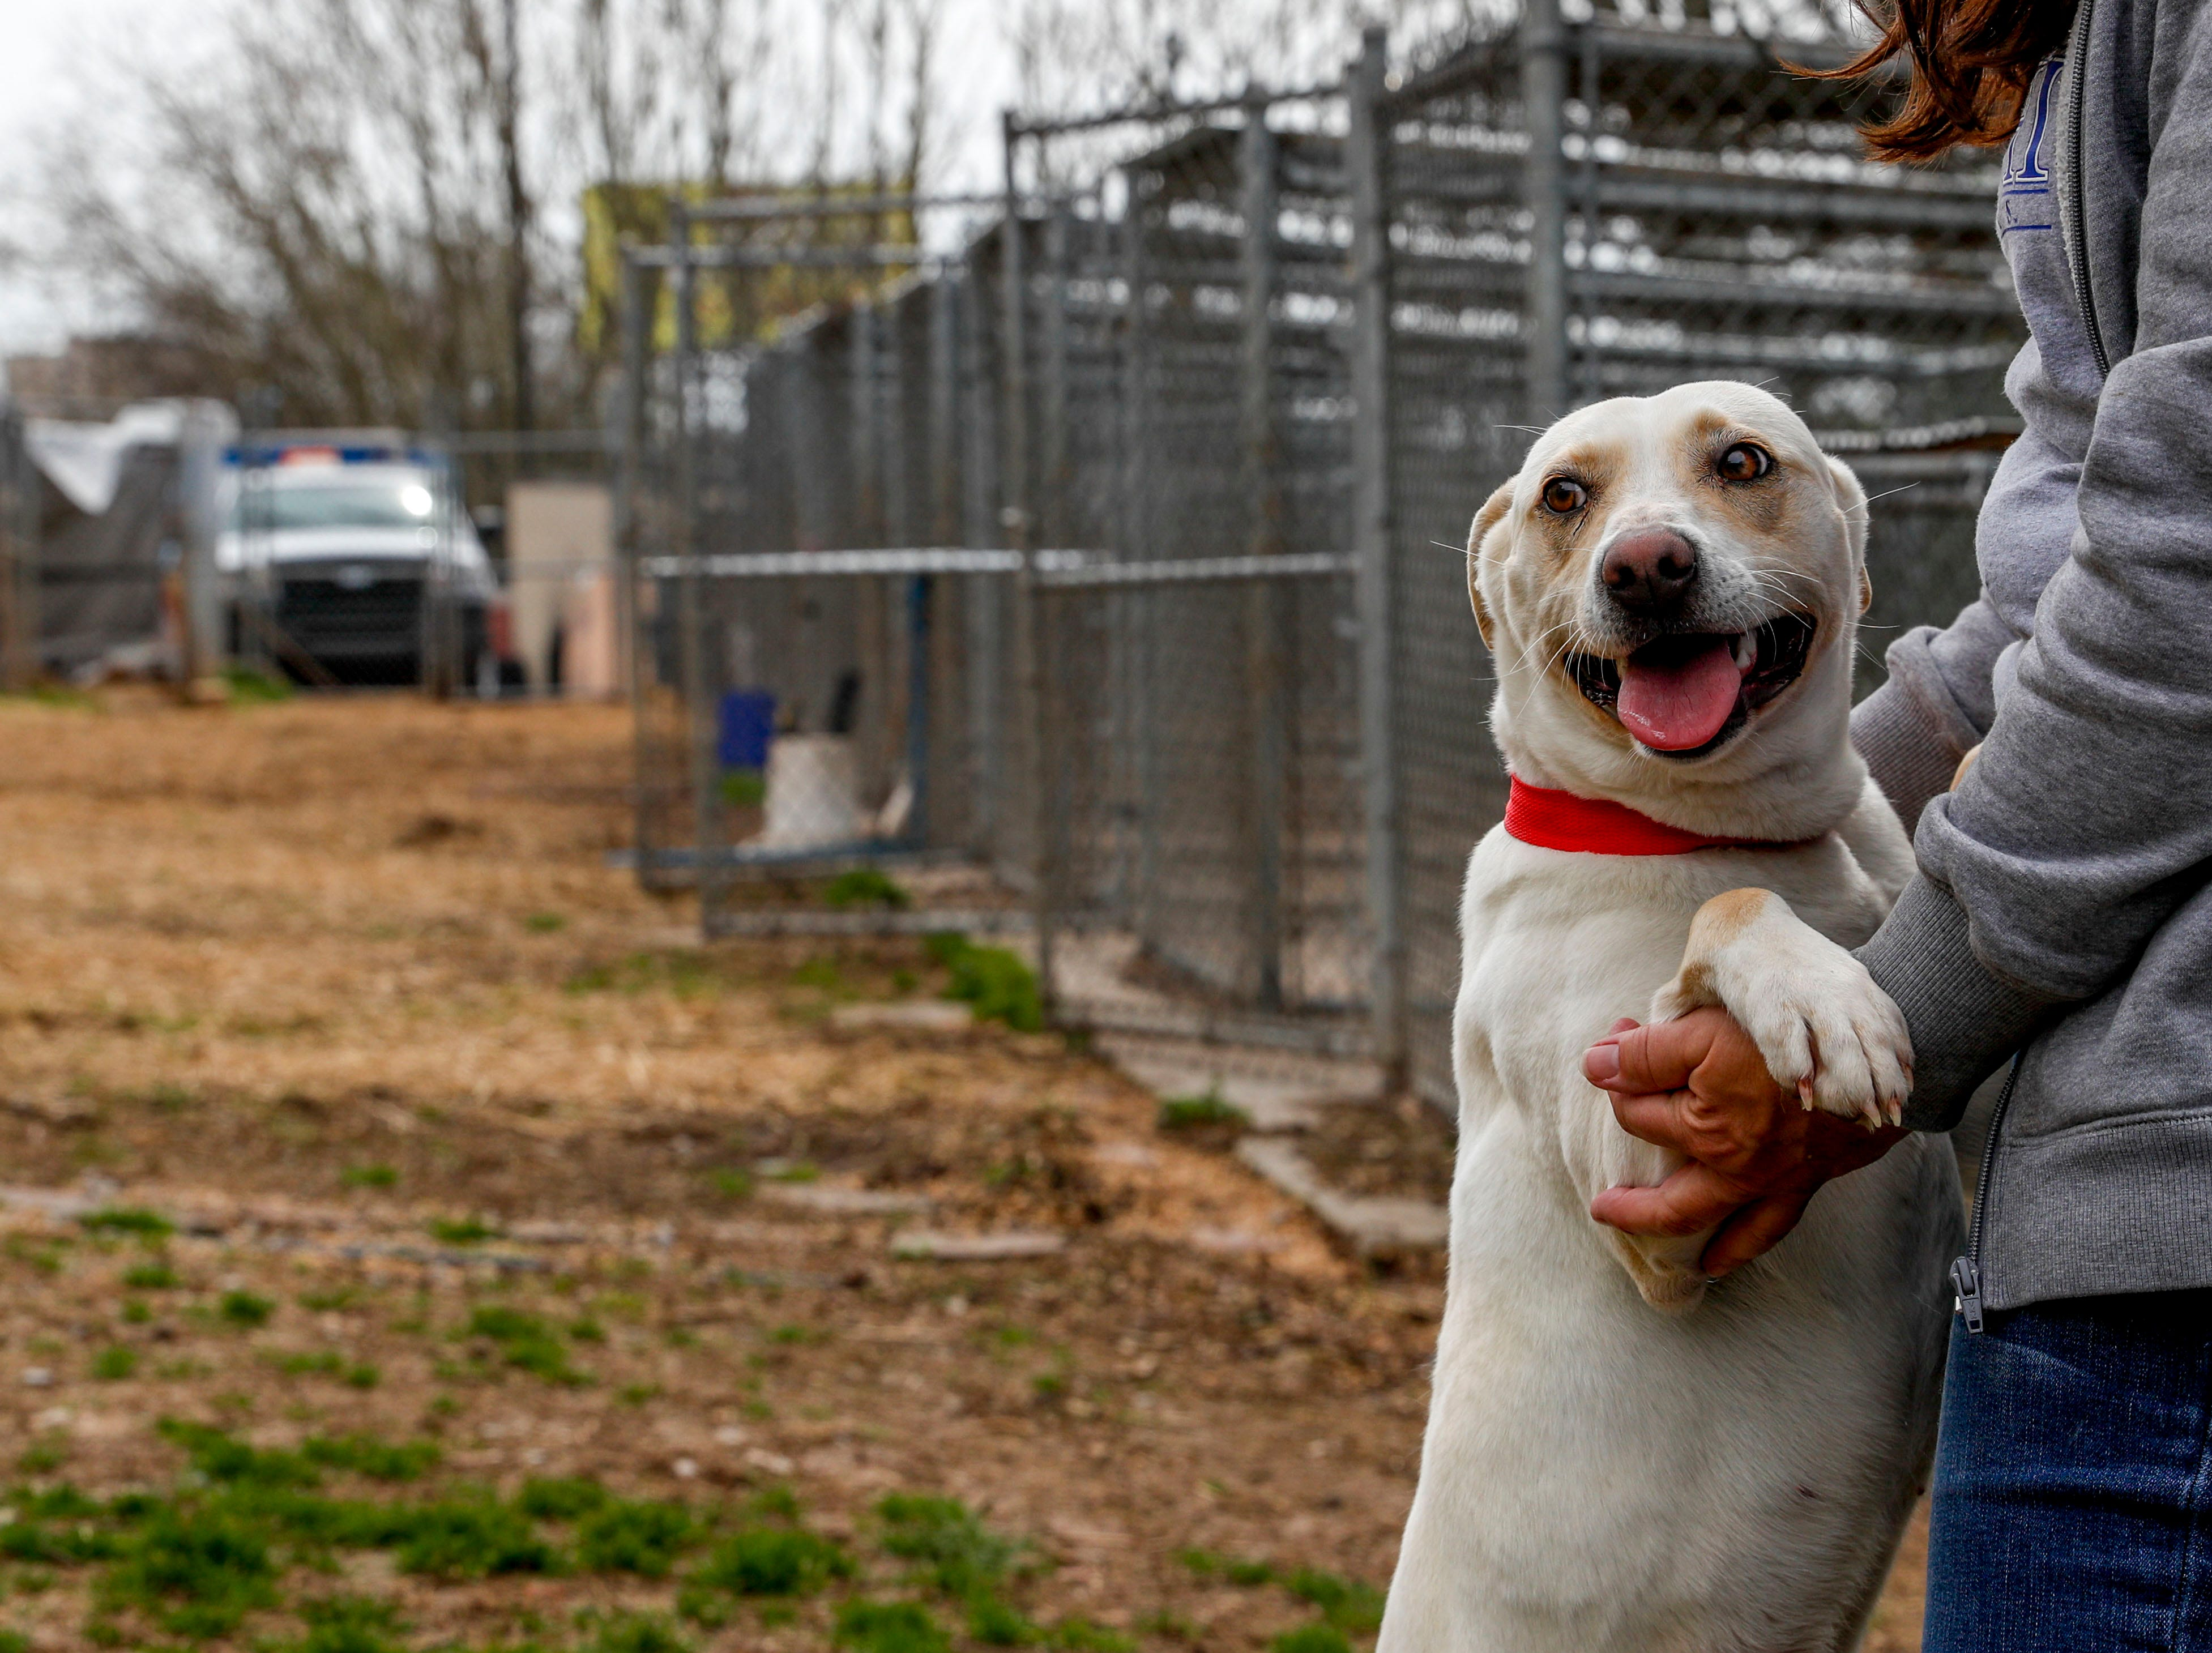 Lucy, a mixed breed, jumps up into the arms of administrative assistant Lori Suiter while playing in the yard at Montgomery County Animal Care and Control in Clarksville, Tenn., on Wednesday, March 13, 2019.